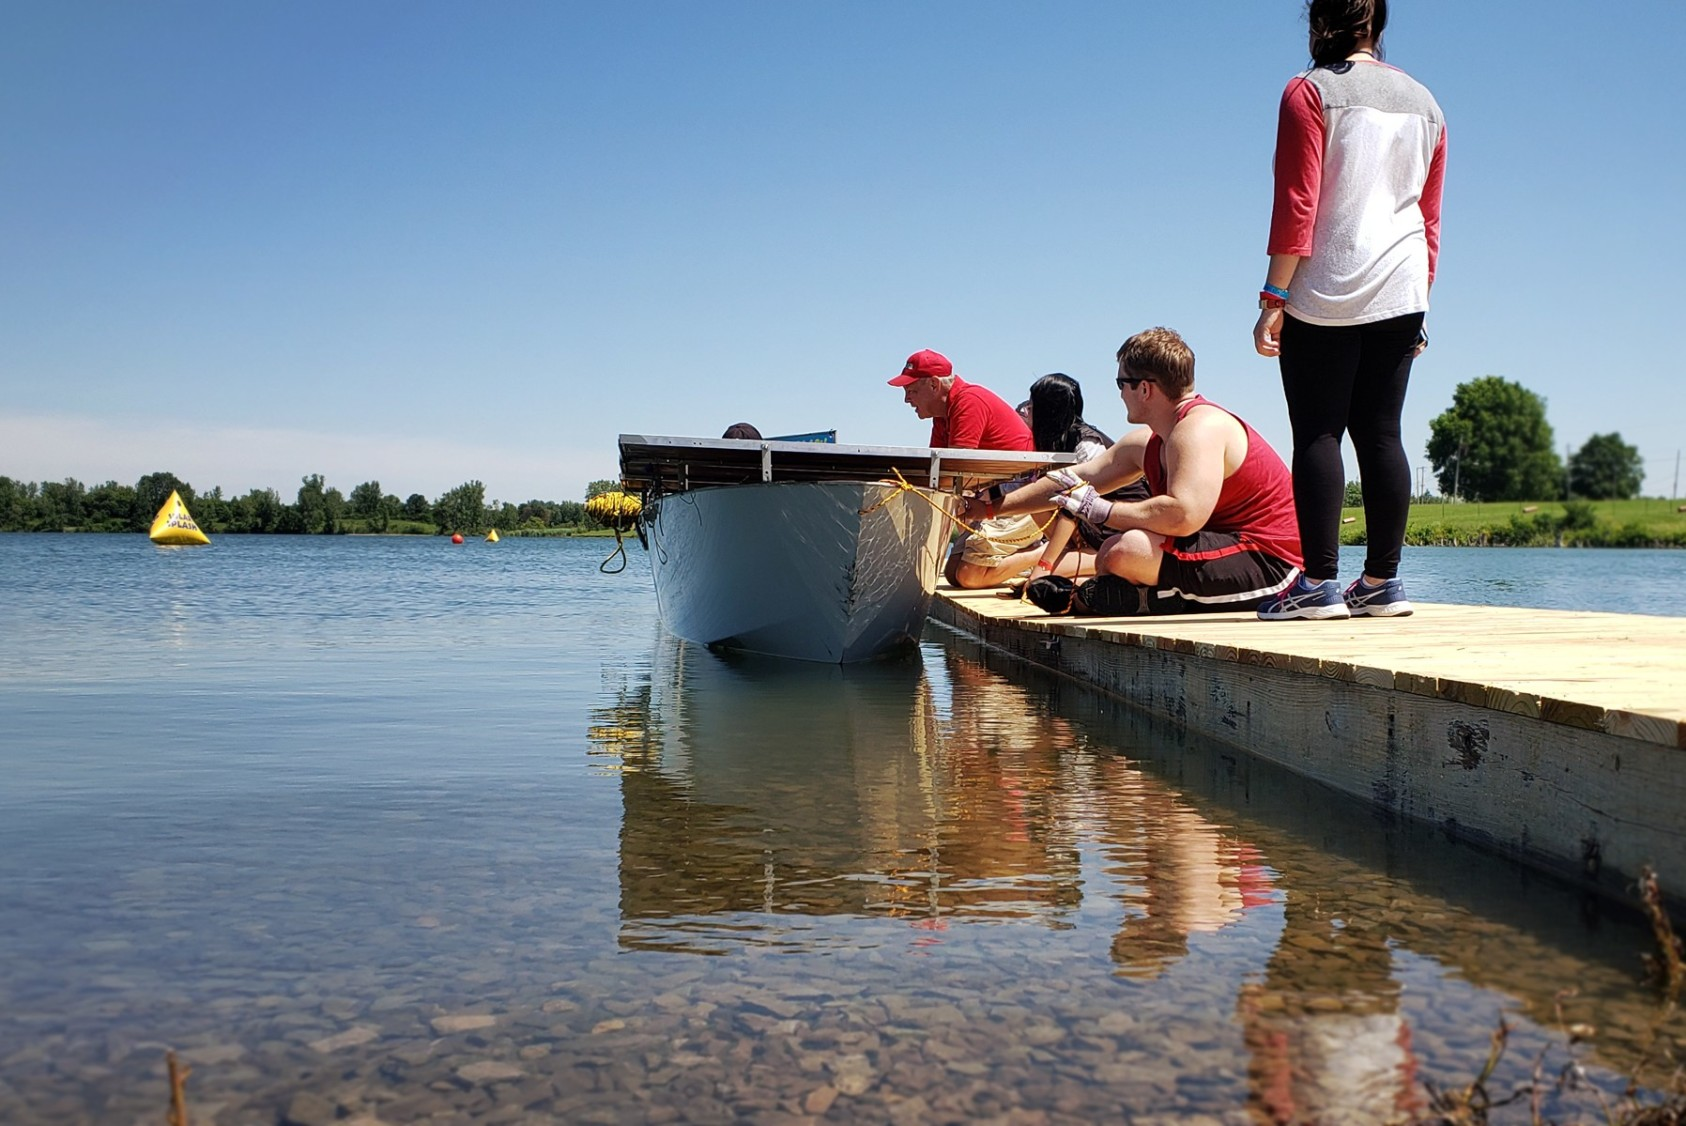 Members of the Cornell Solar Boat team prepare their solar-powered craft for the Solar Splash intercollegiate competition.